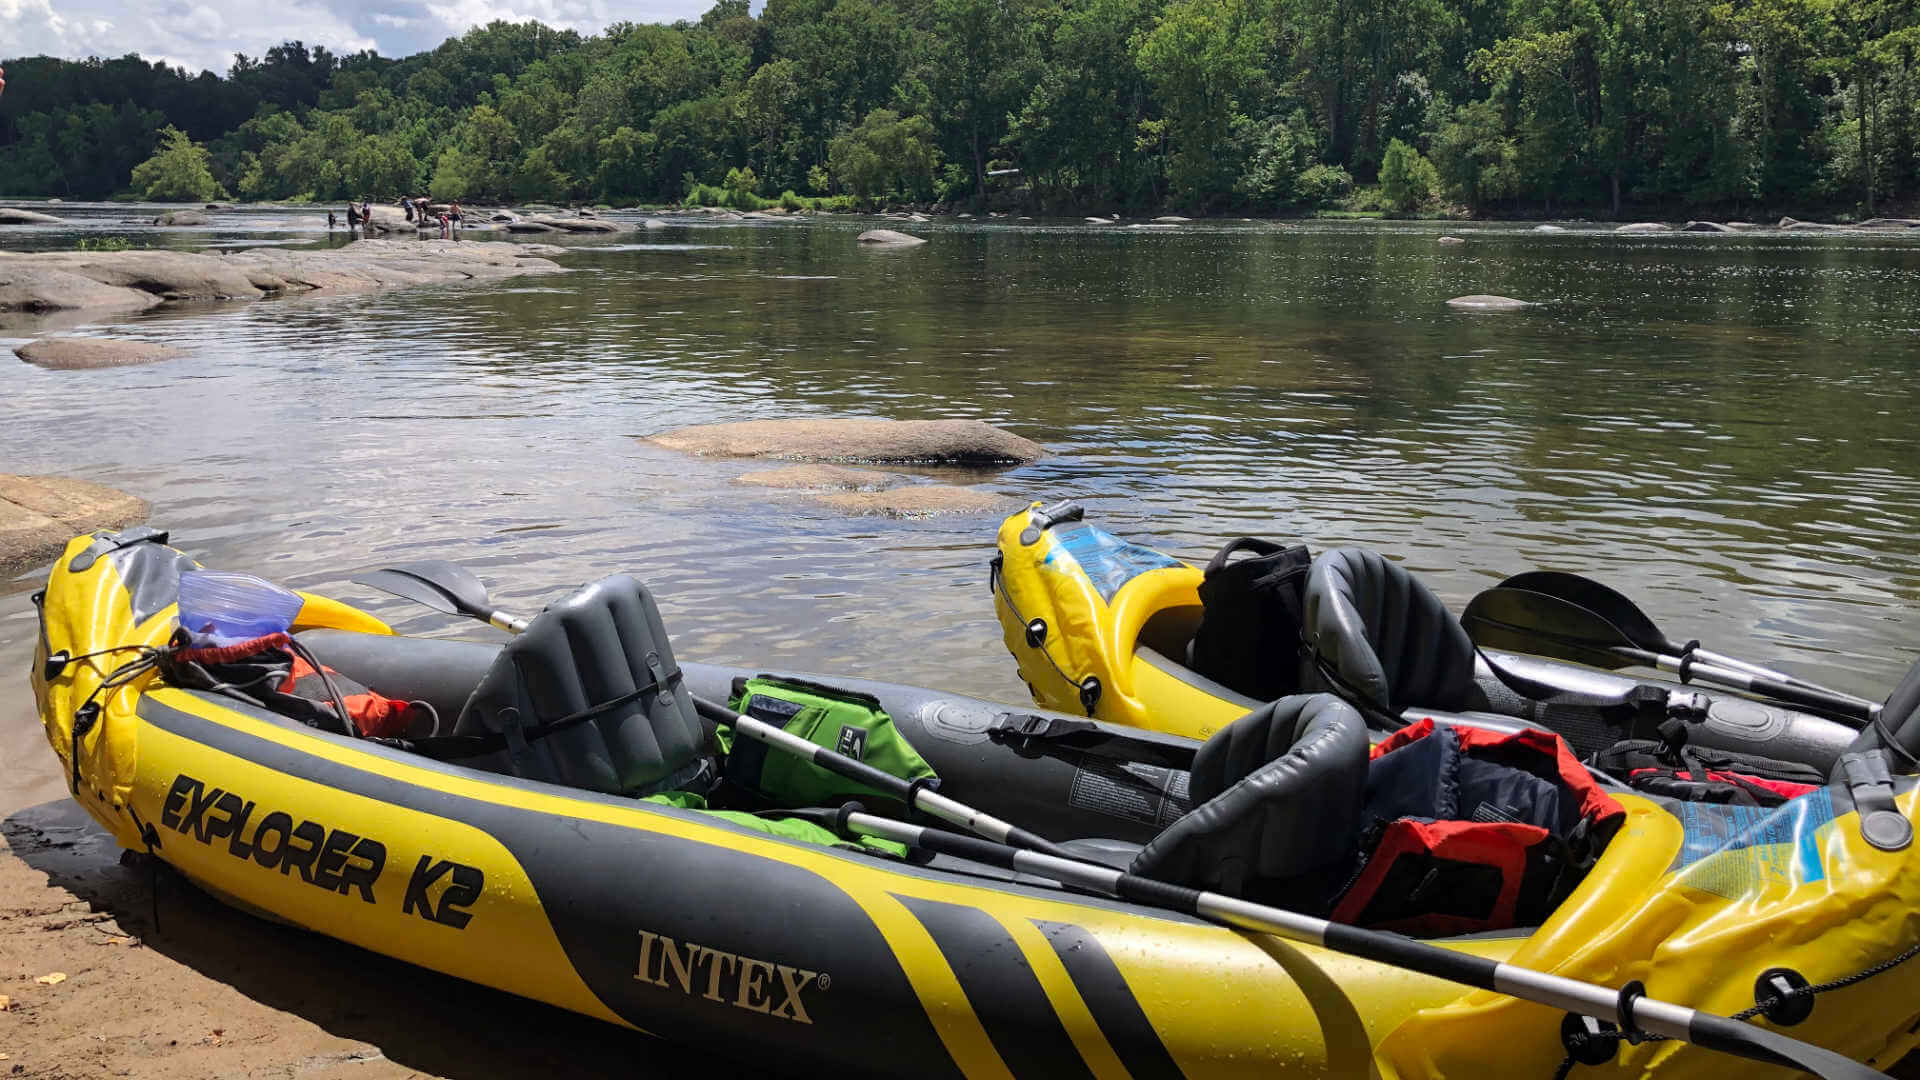 Staycation fun: dual inflatable kayaking down a river in an Intex Explorer K2! It's almost like an inner tube you can paddle!